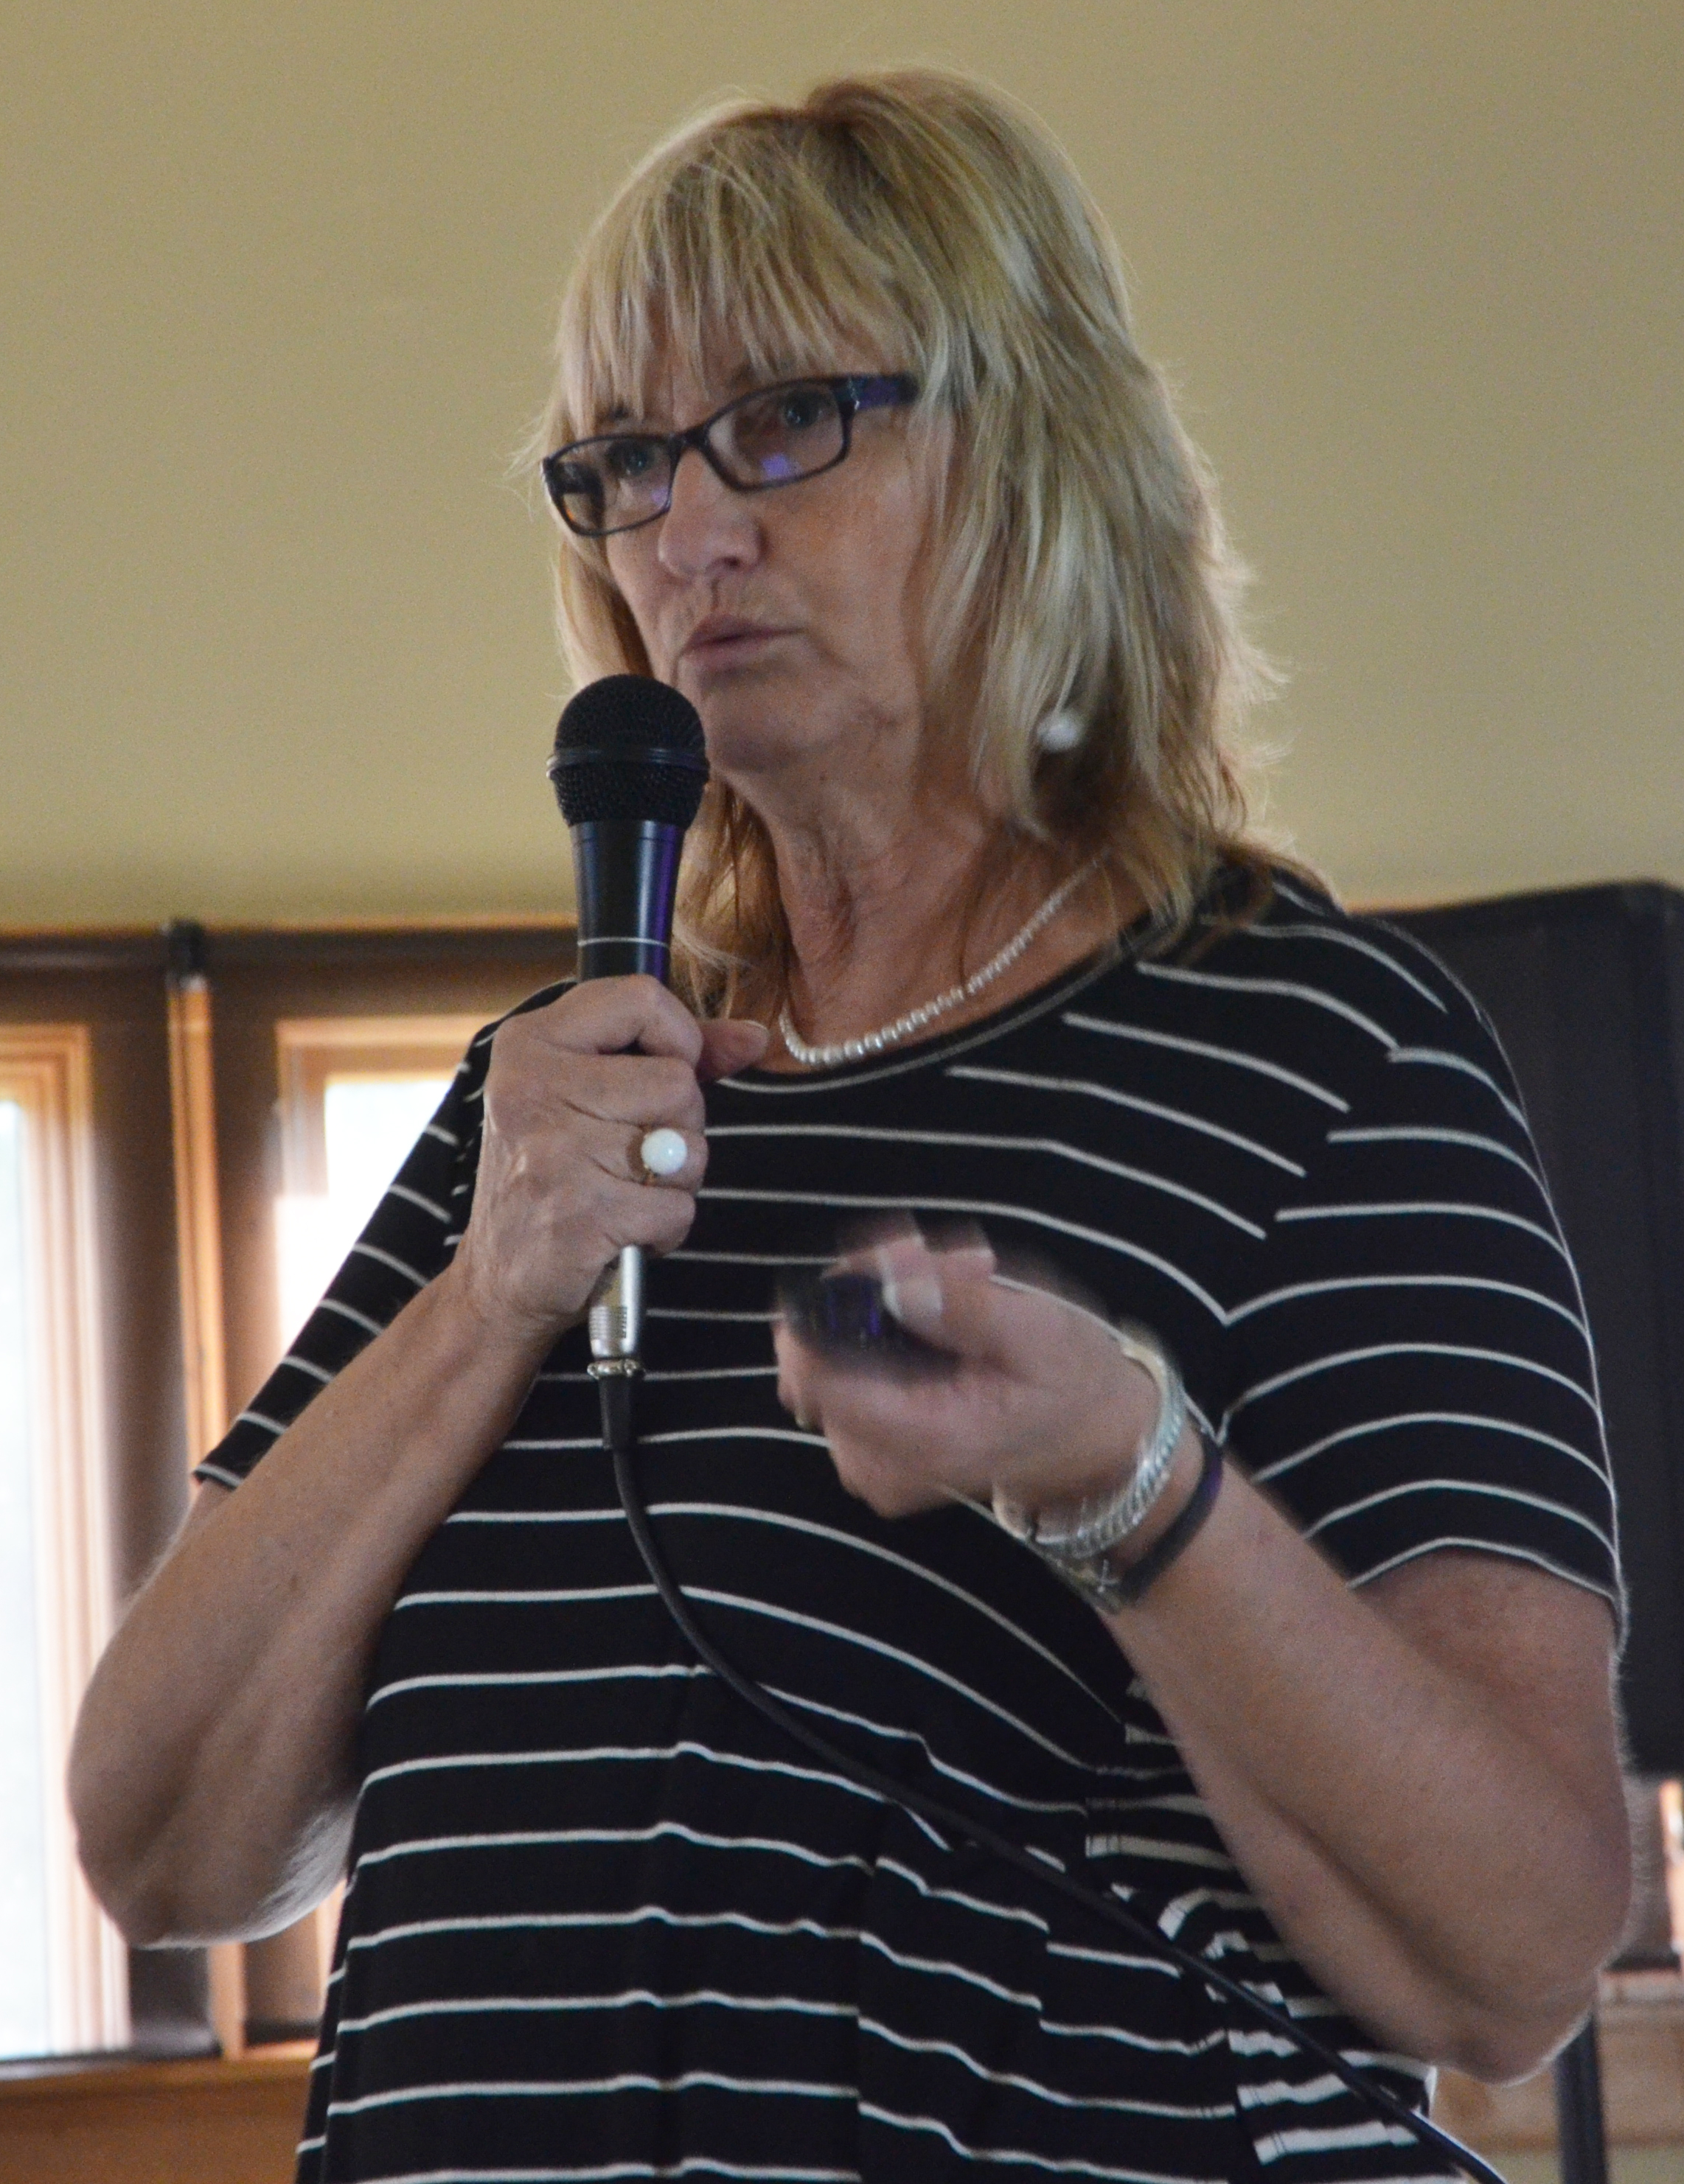 Indiana wabash county lagro - Beth Gillespie President Of The Lagro Canal Foundation Speaks To A Crowd Wednesday June 28 About The Newly Formed Foundation S Goals And Plans To